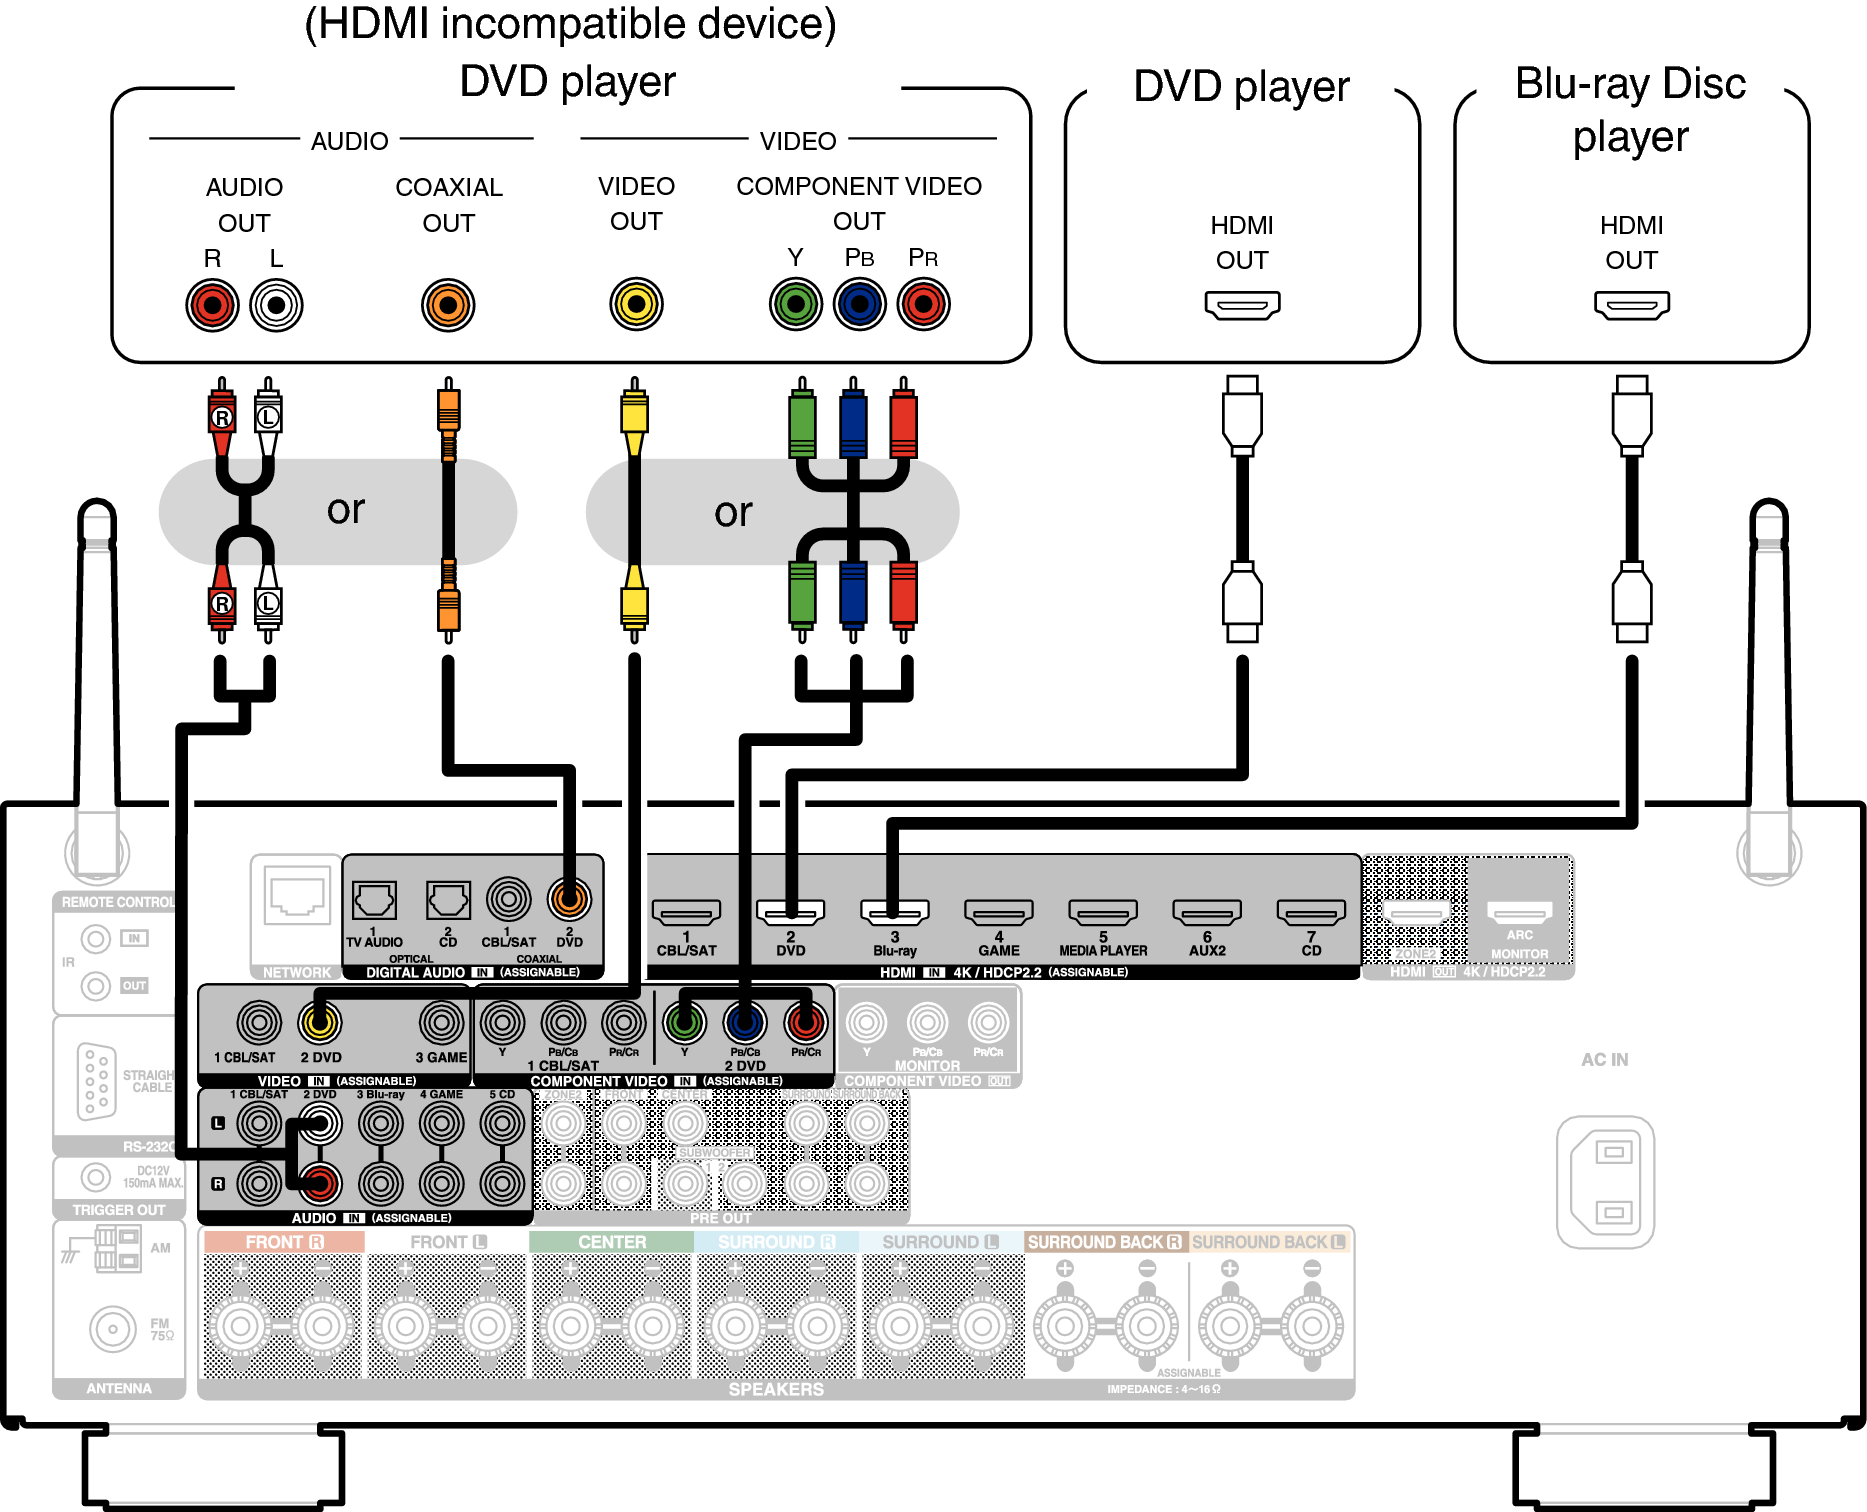 Blu Ray Tv Hookup Diagrams With Hdmi - DIY Enthusiasts Wiring Diagrams •